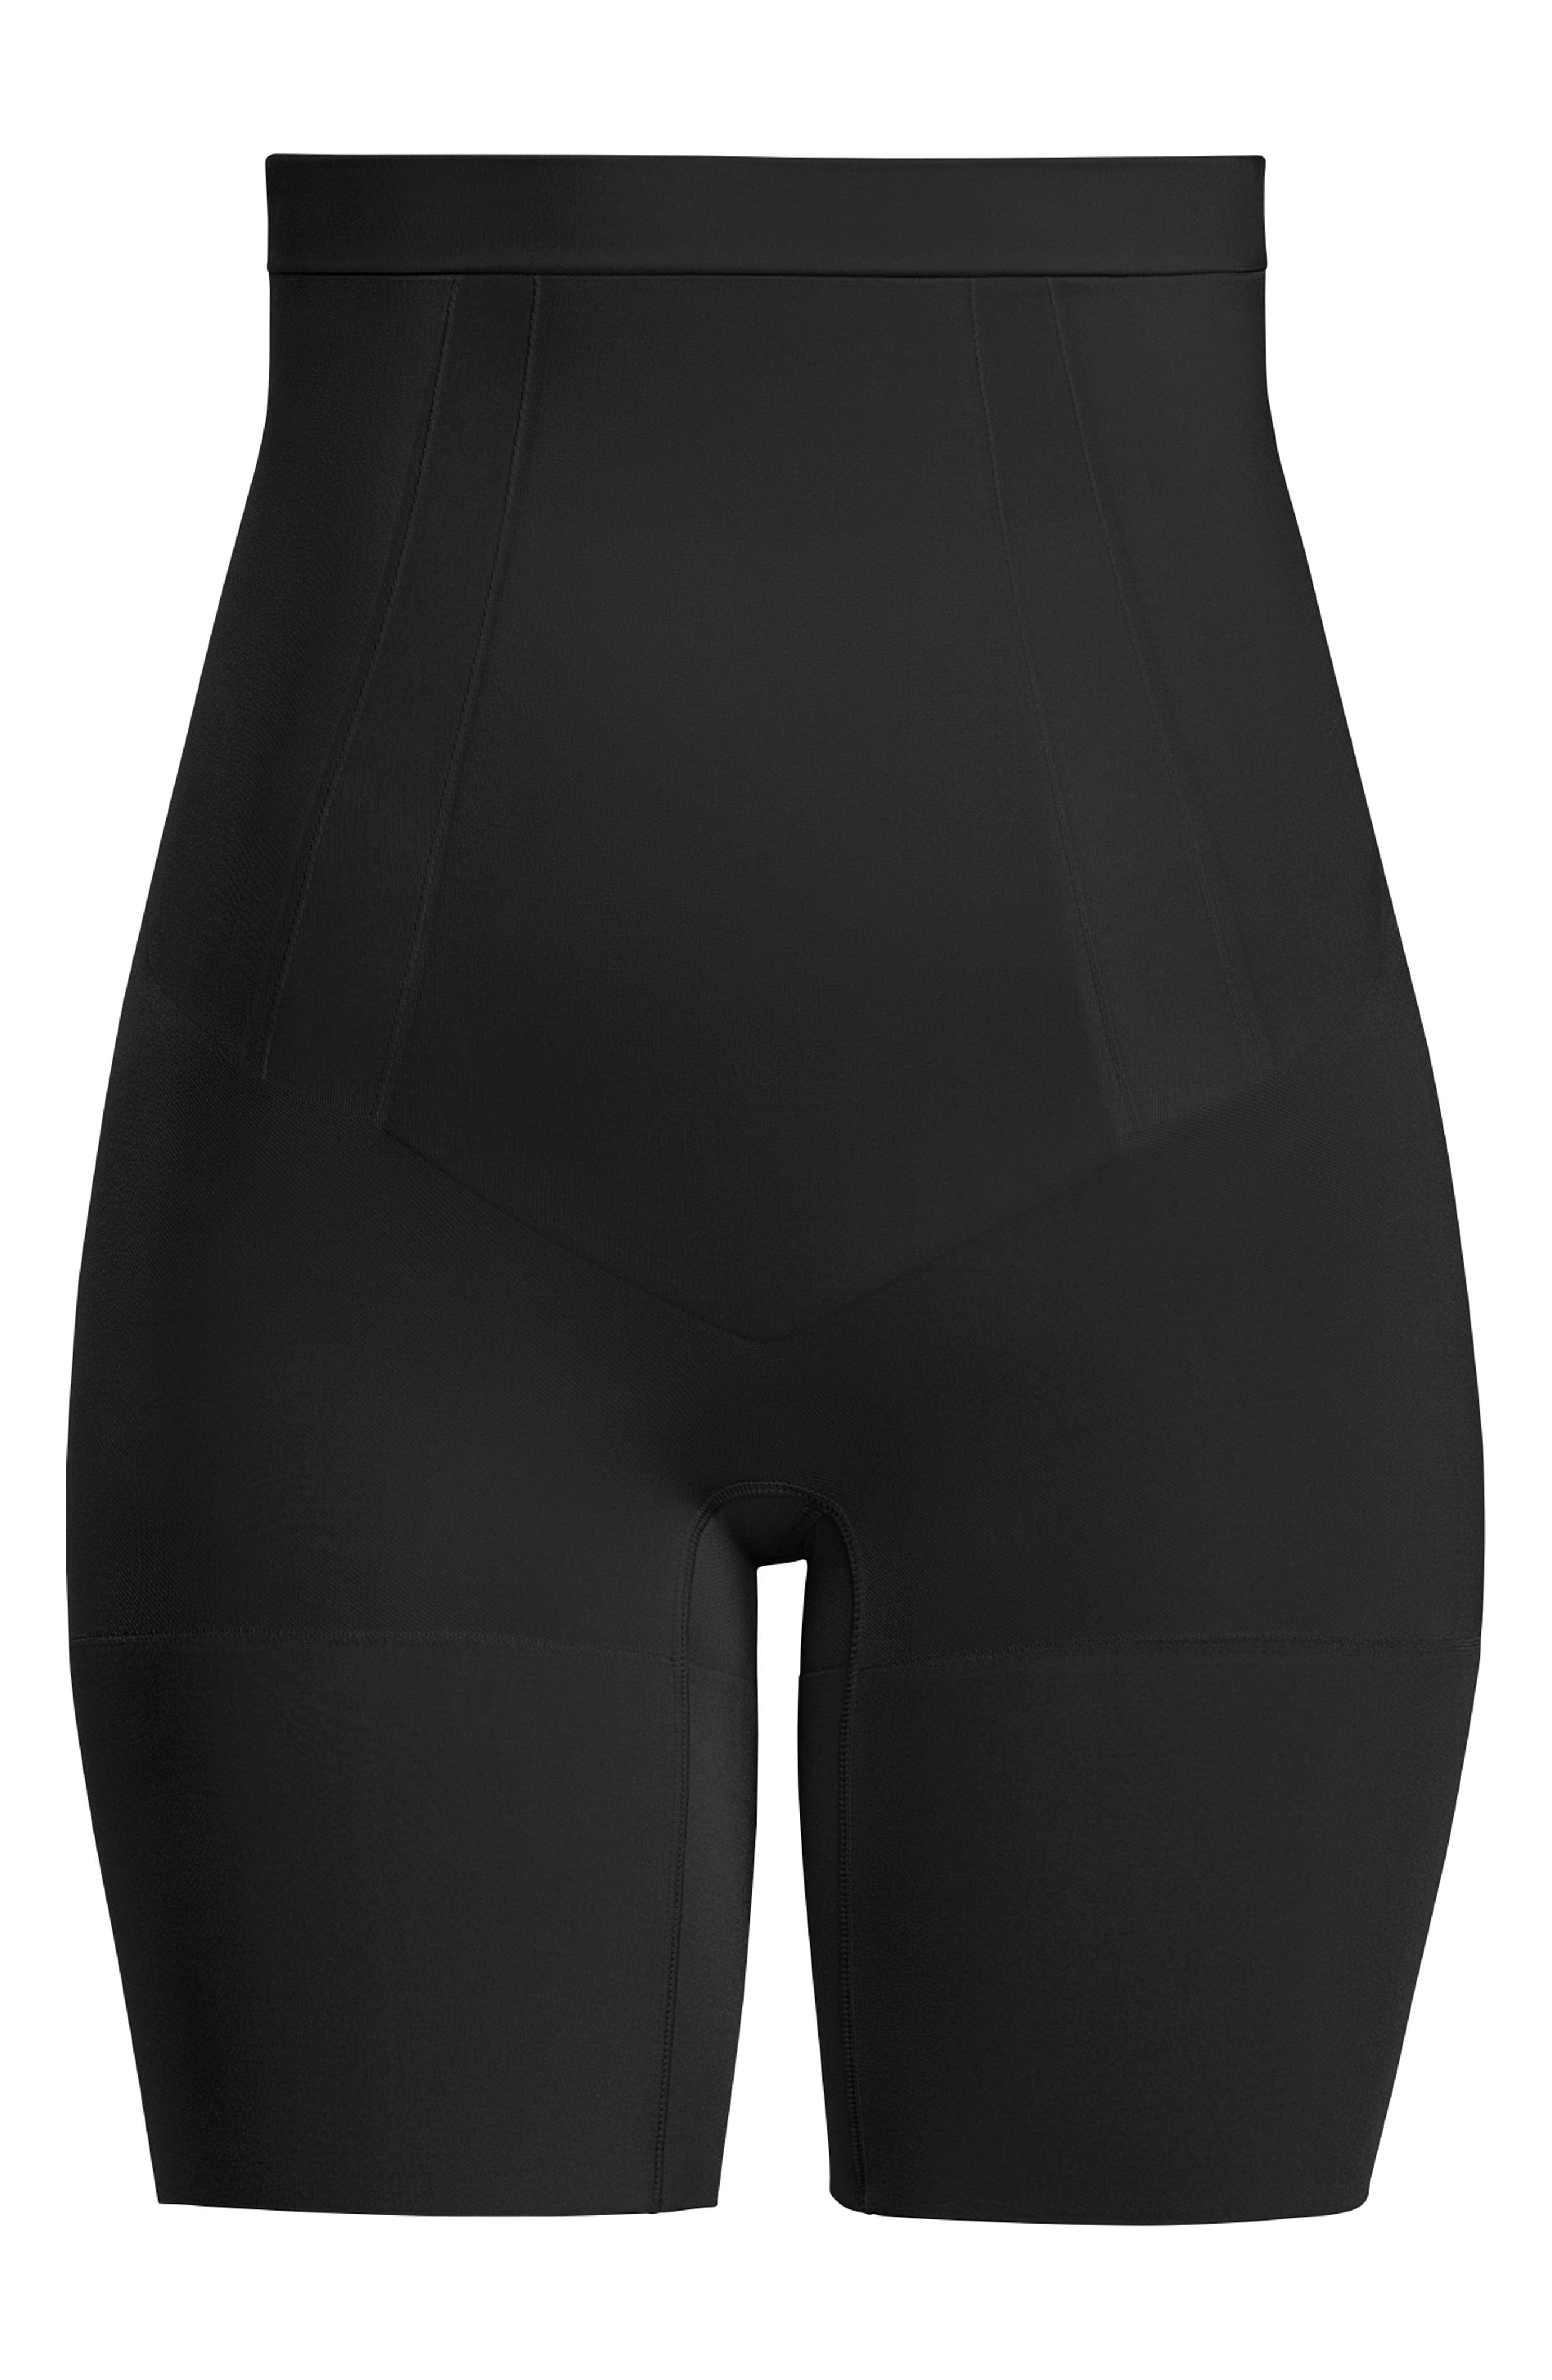 OnCcore High Waist Mid Thigh Shaper,                             Alternate thumbnail 2, color,                             Black